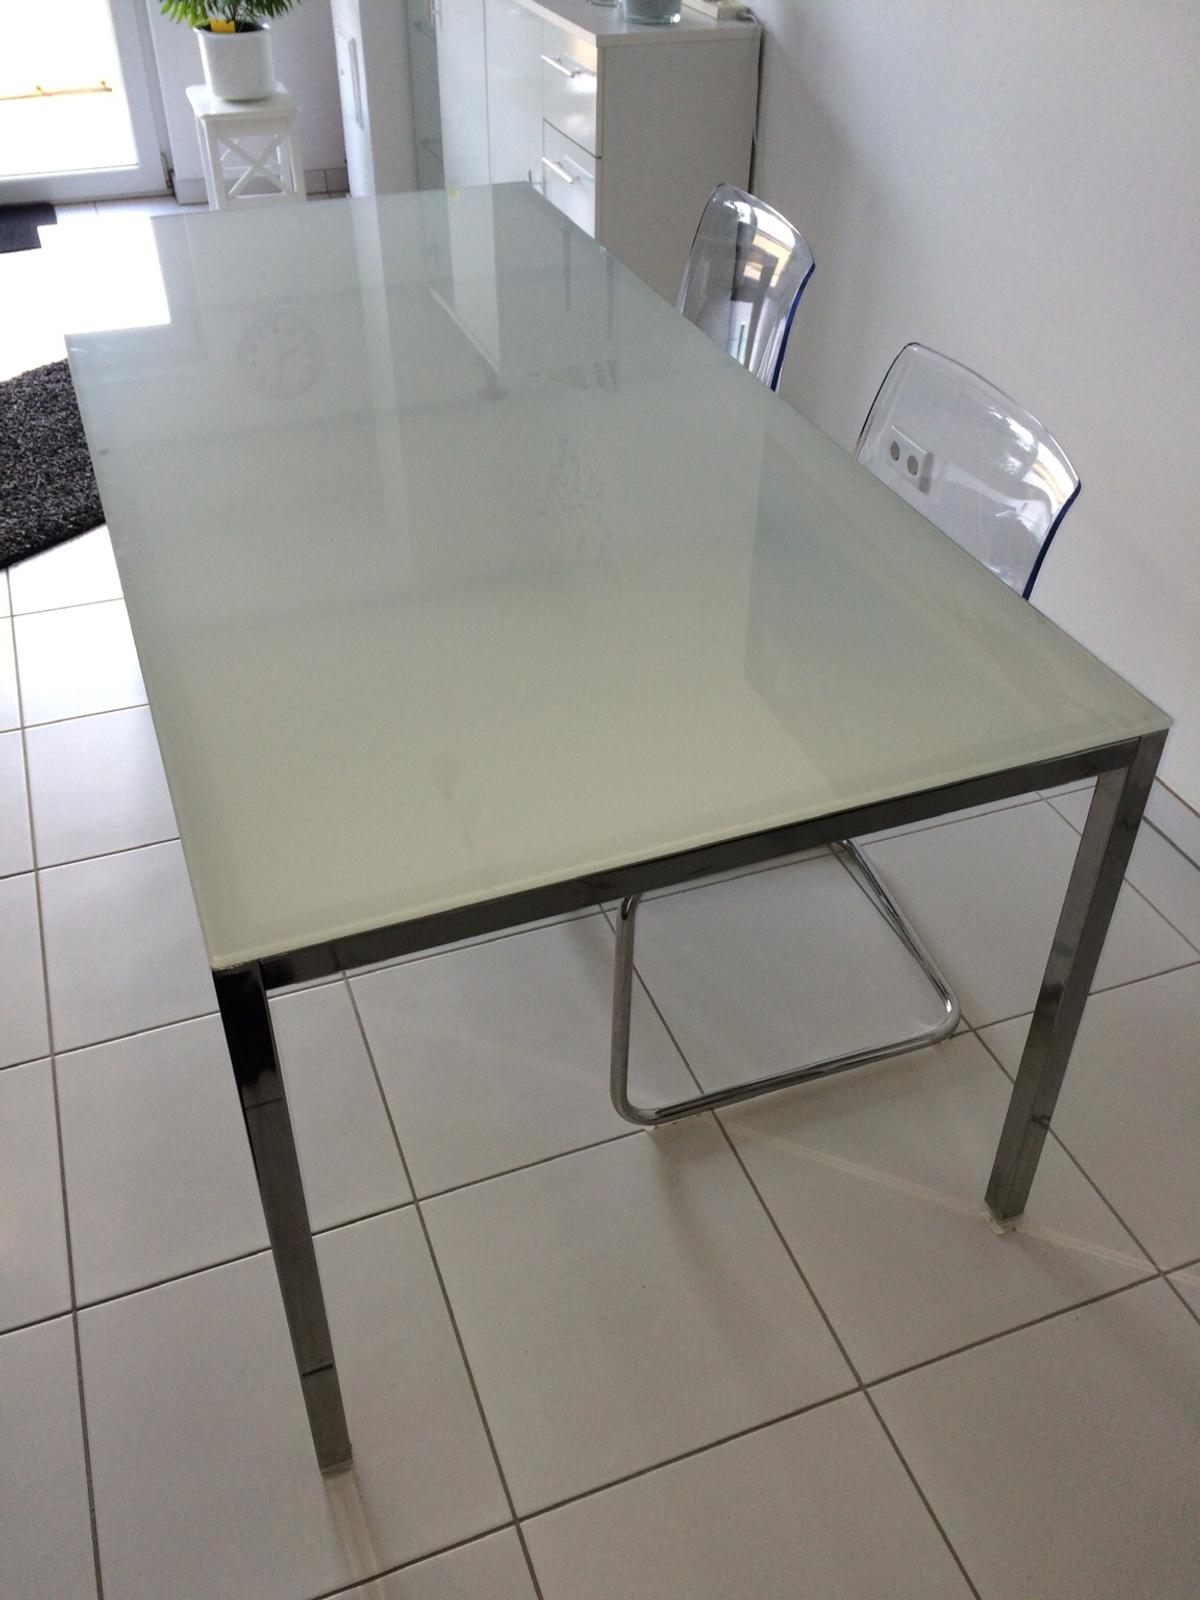 Ikea Glastisch Esstisch Torsby 180 Cm Lang In 68766 Hockenheim For 85 00 For Sale Shpock